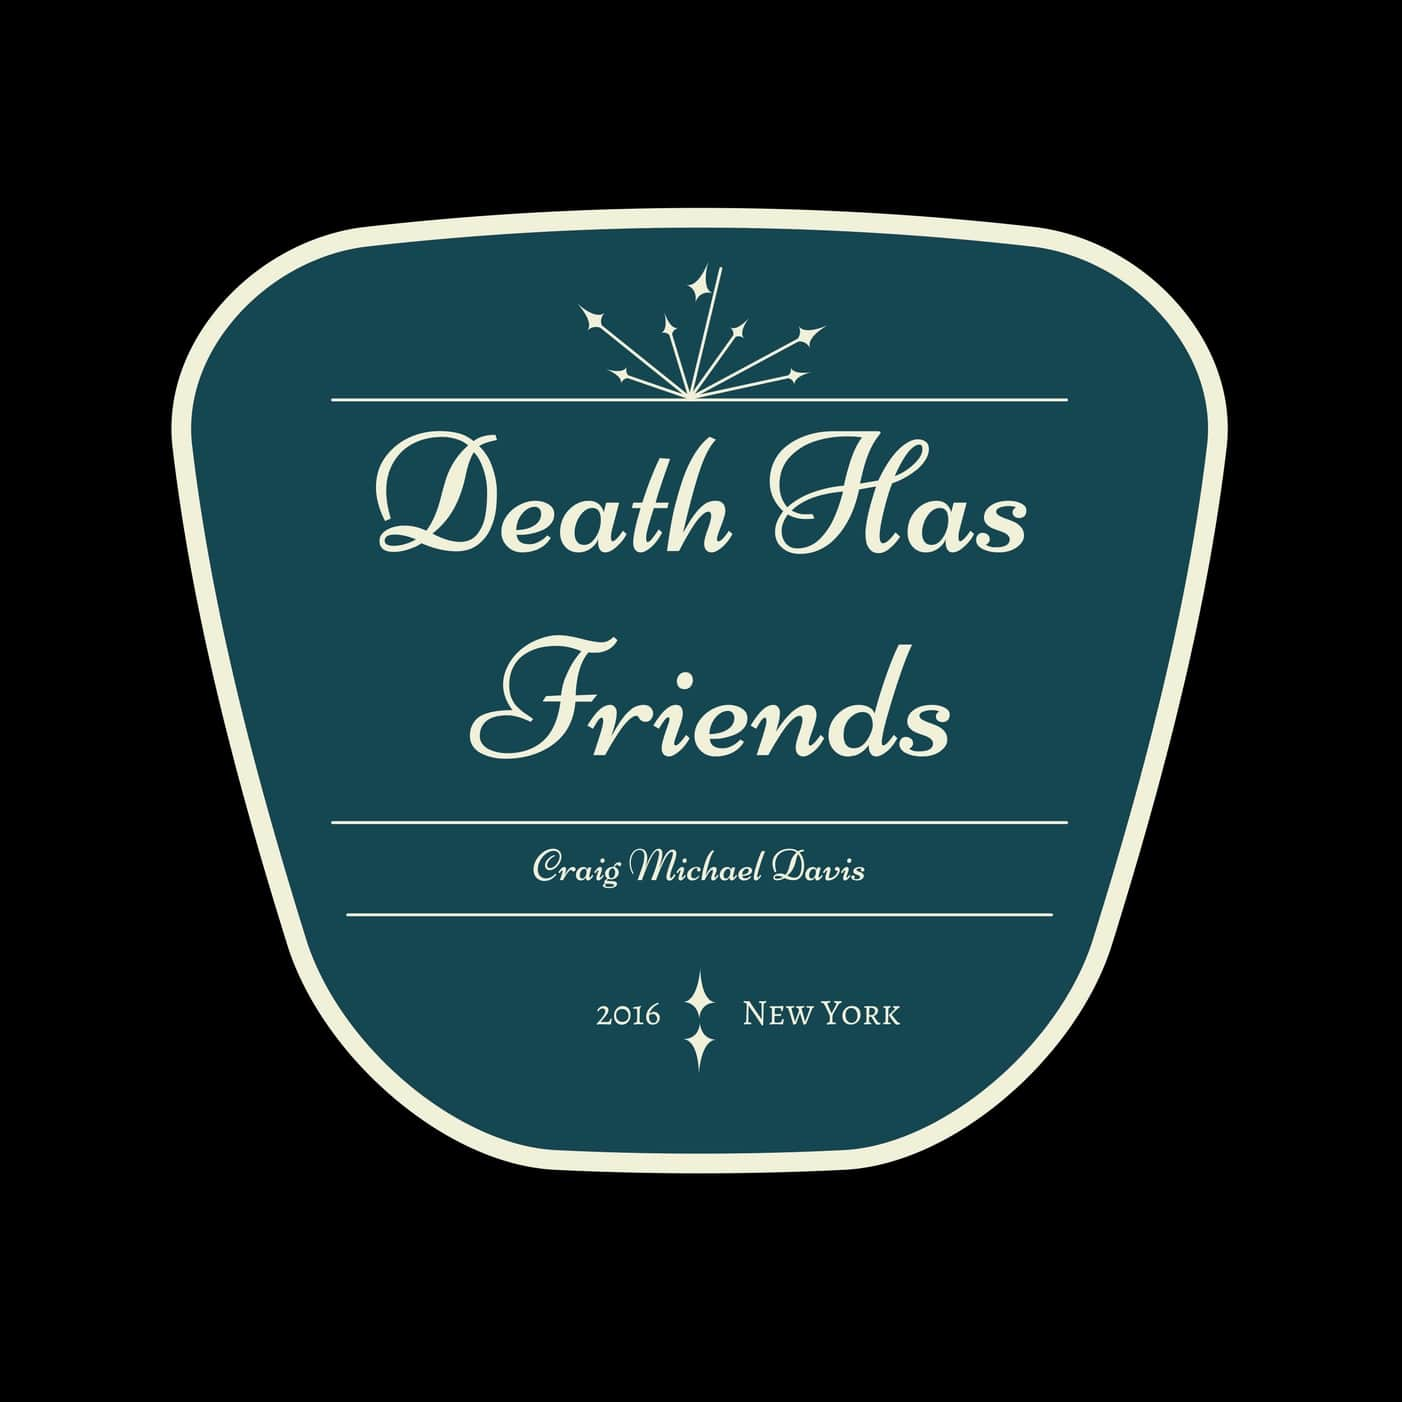 Death has friends-min.jpg